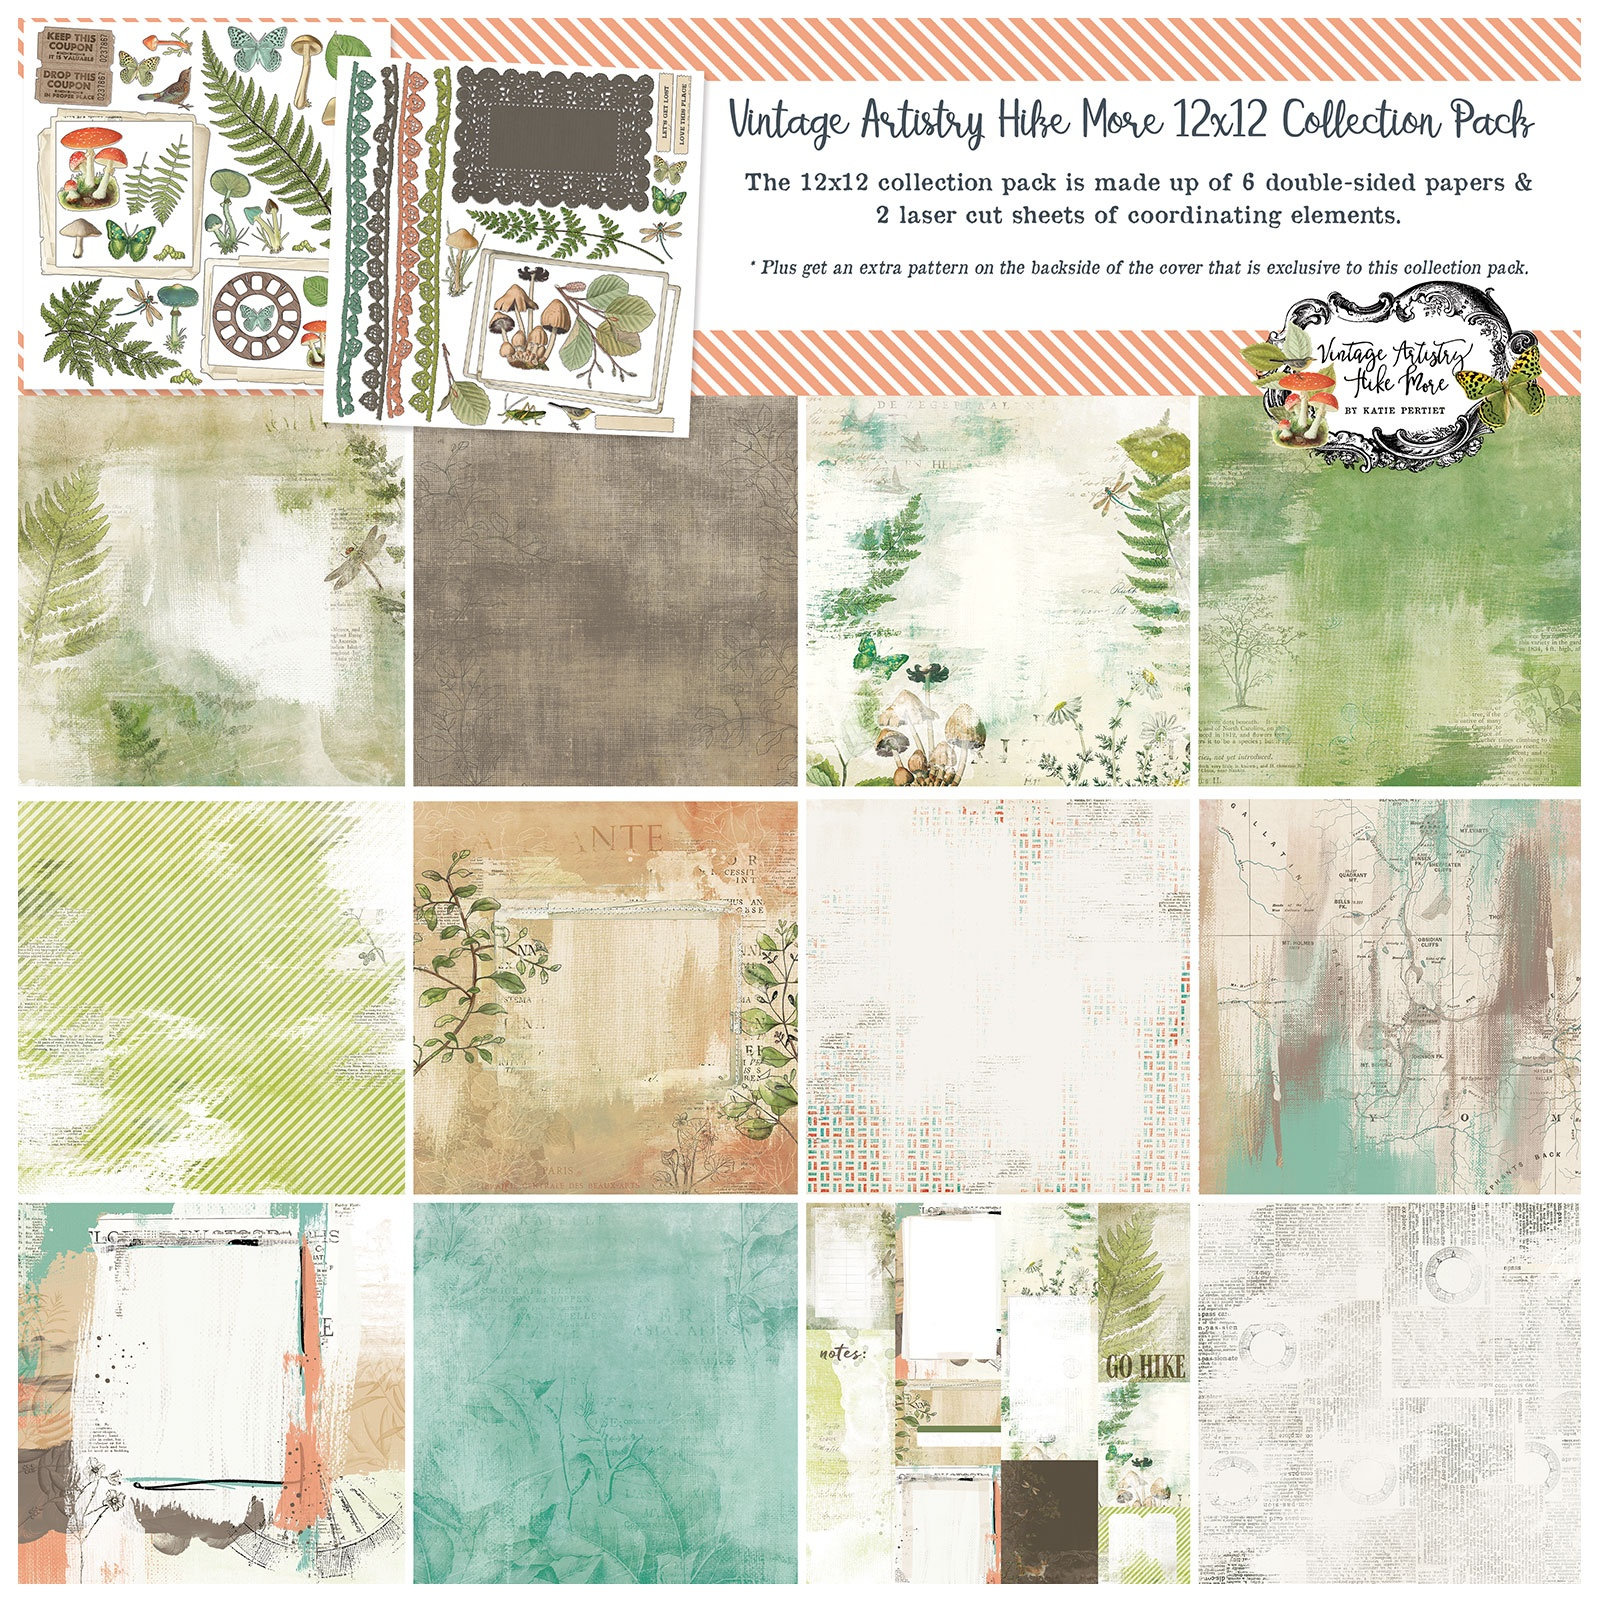 49 And Market Collection Pack 12X12-Vintage Artistry Hike More